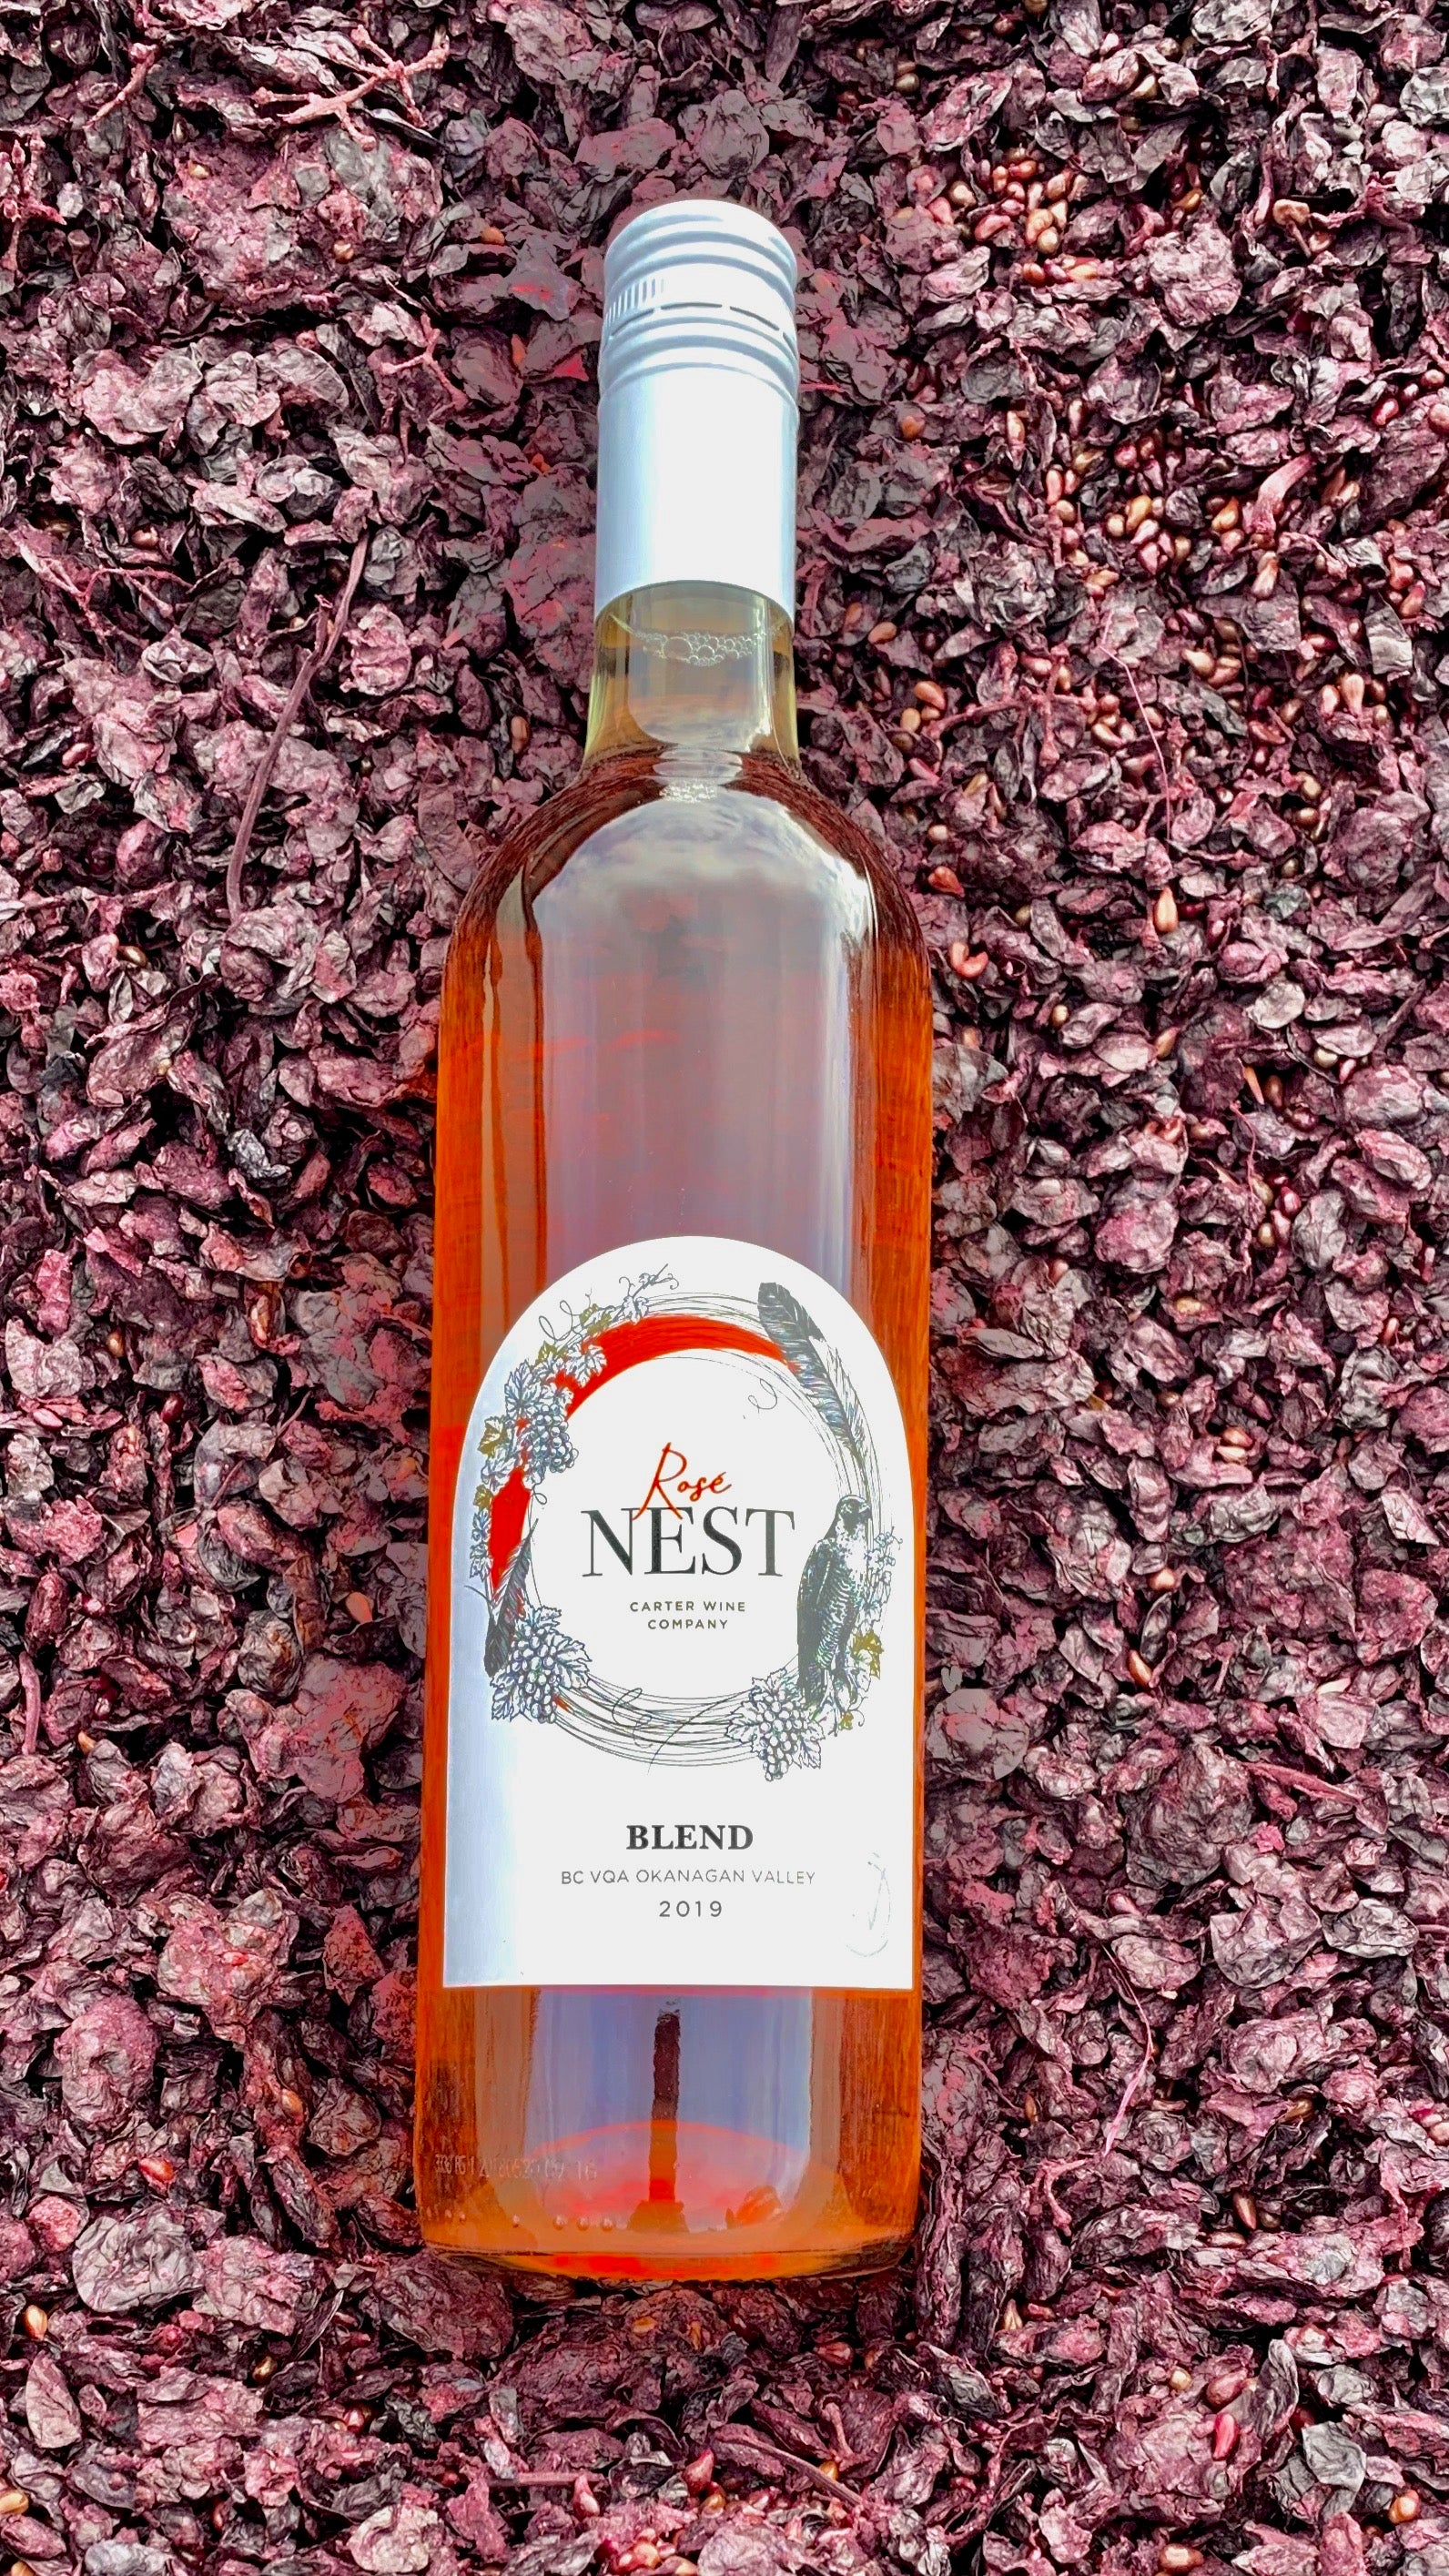 Carter Wine Company Limited Release The Nest Series Rose Blend 2019